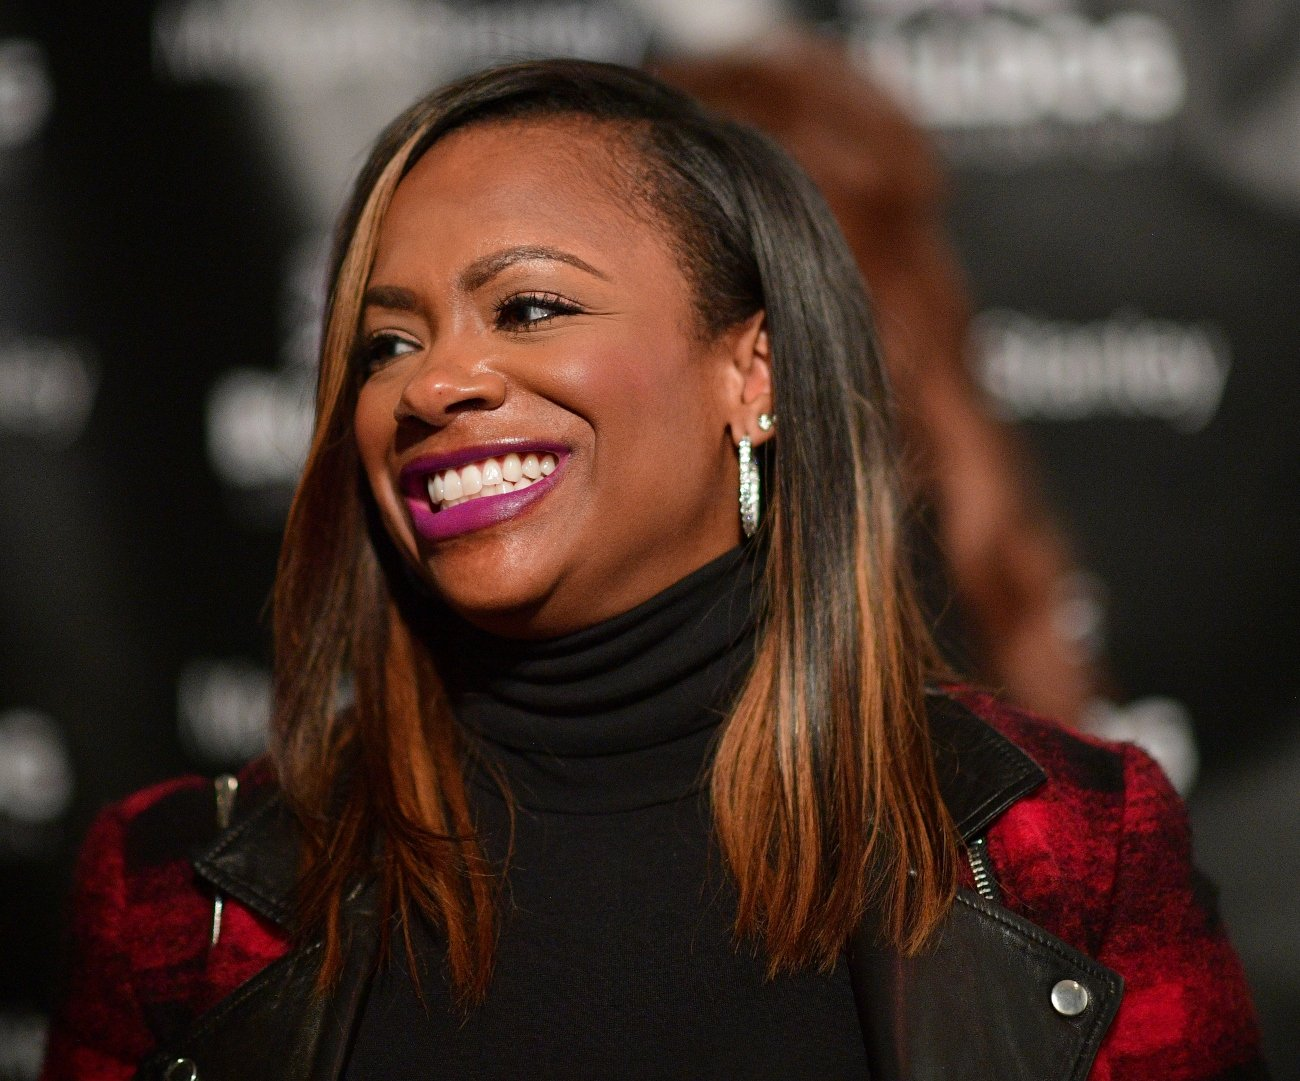 Kandi Burruss Misses The Masked Singer – Check Out Some Gorgeous Throwback Photos From The Show